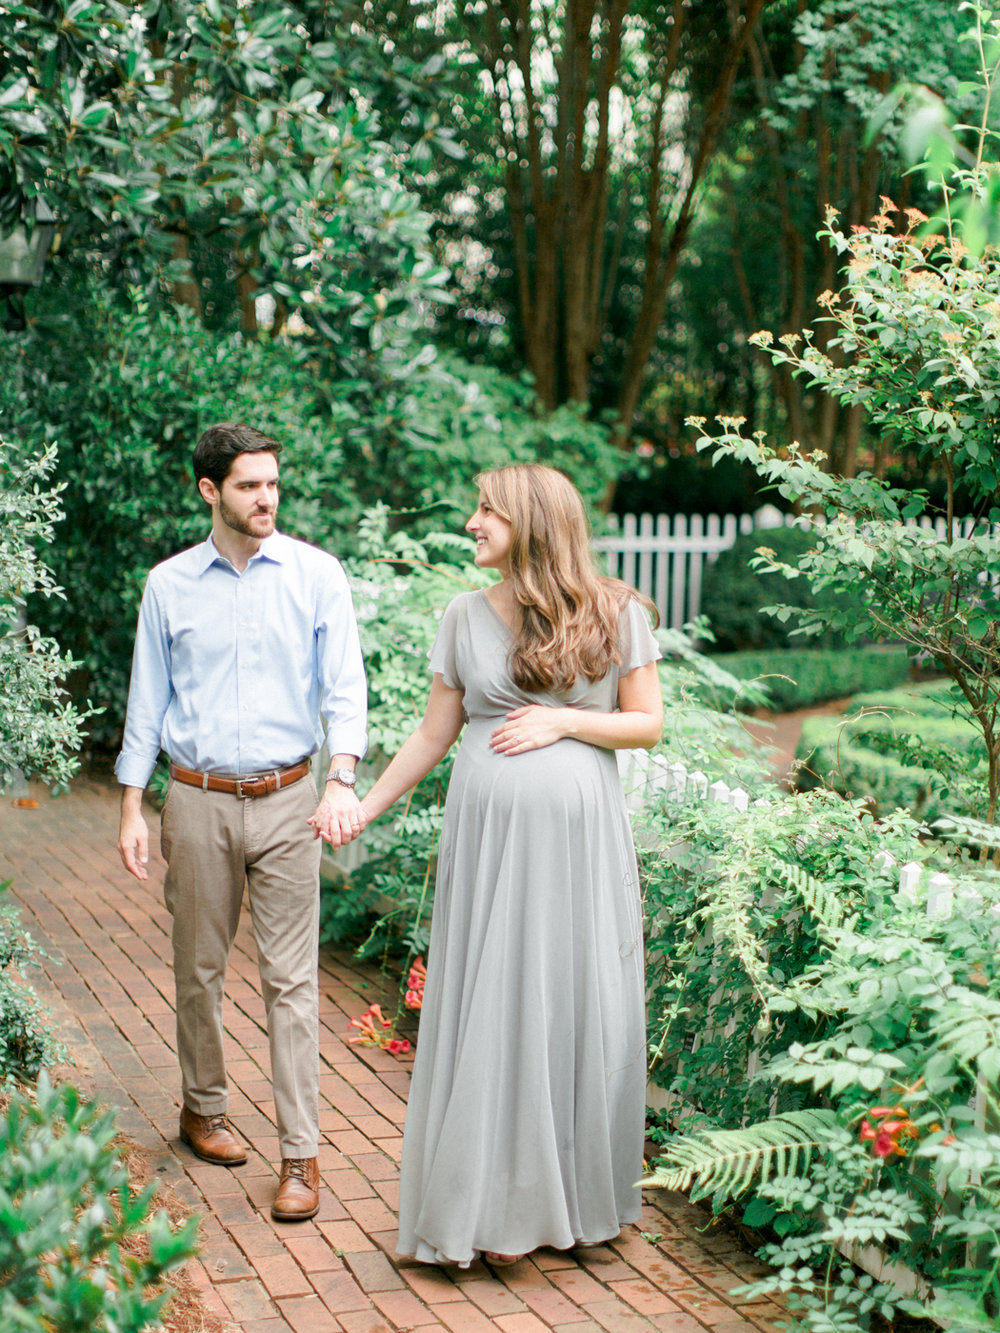 shackleford maternity four corners photography athens maternity photographer anna shackleford photography atlanta film photographer maternity photography-30.jpg